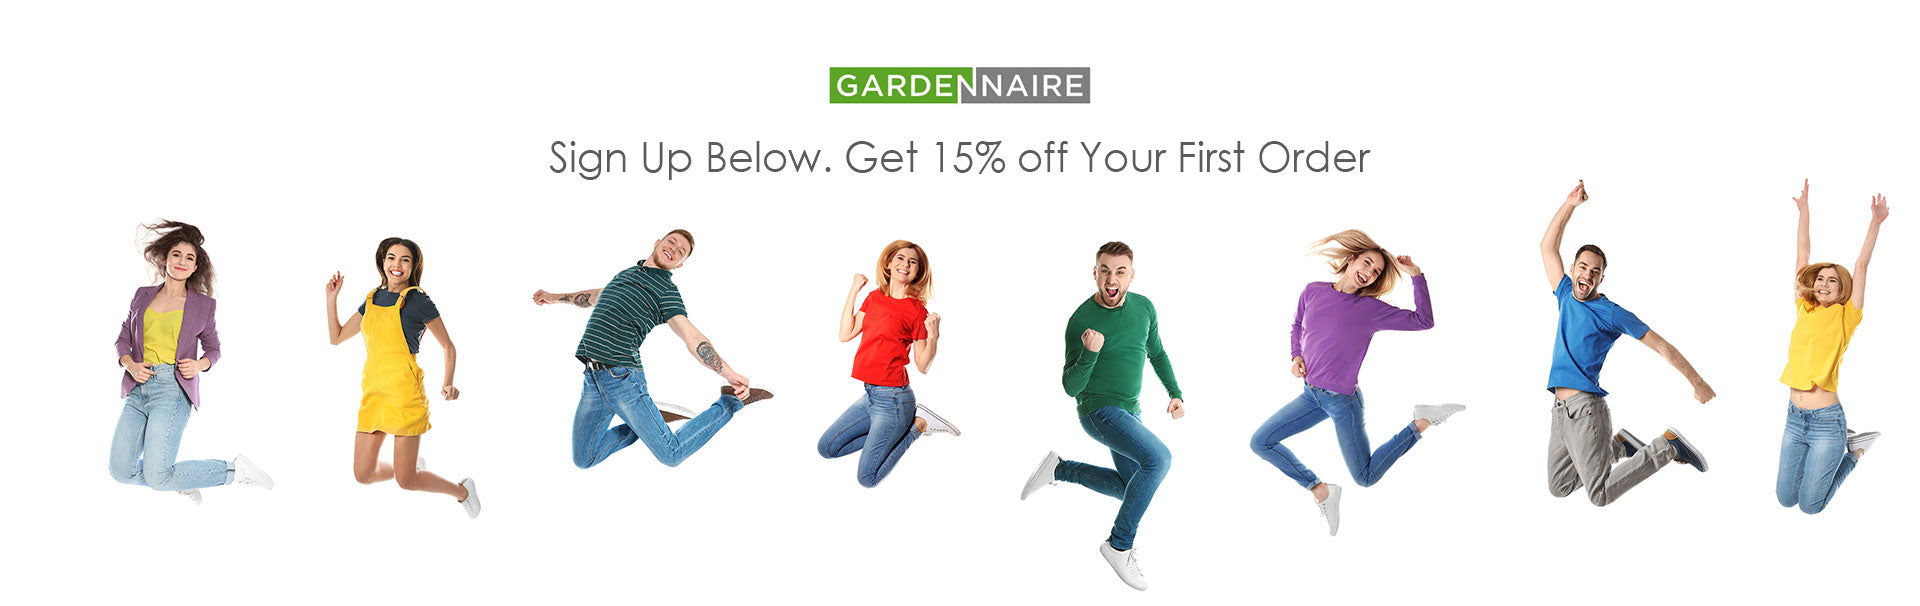 Gardennaire Sign up and save